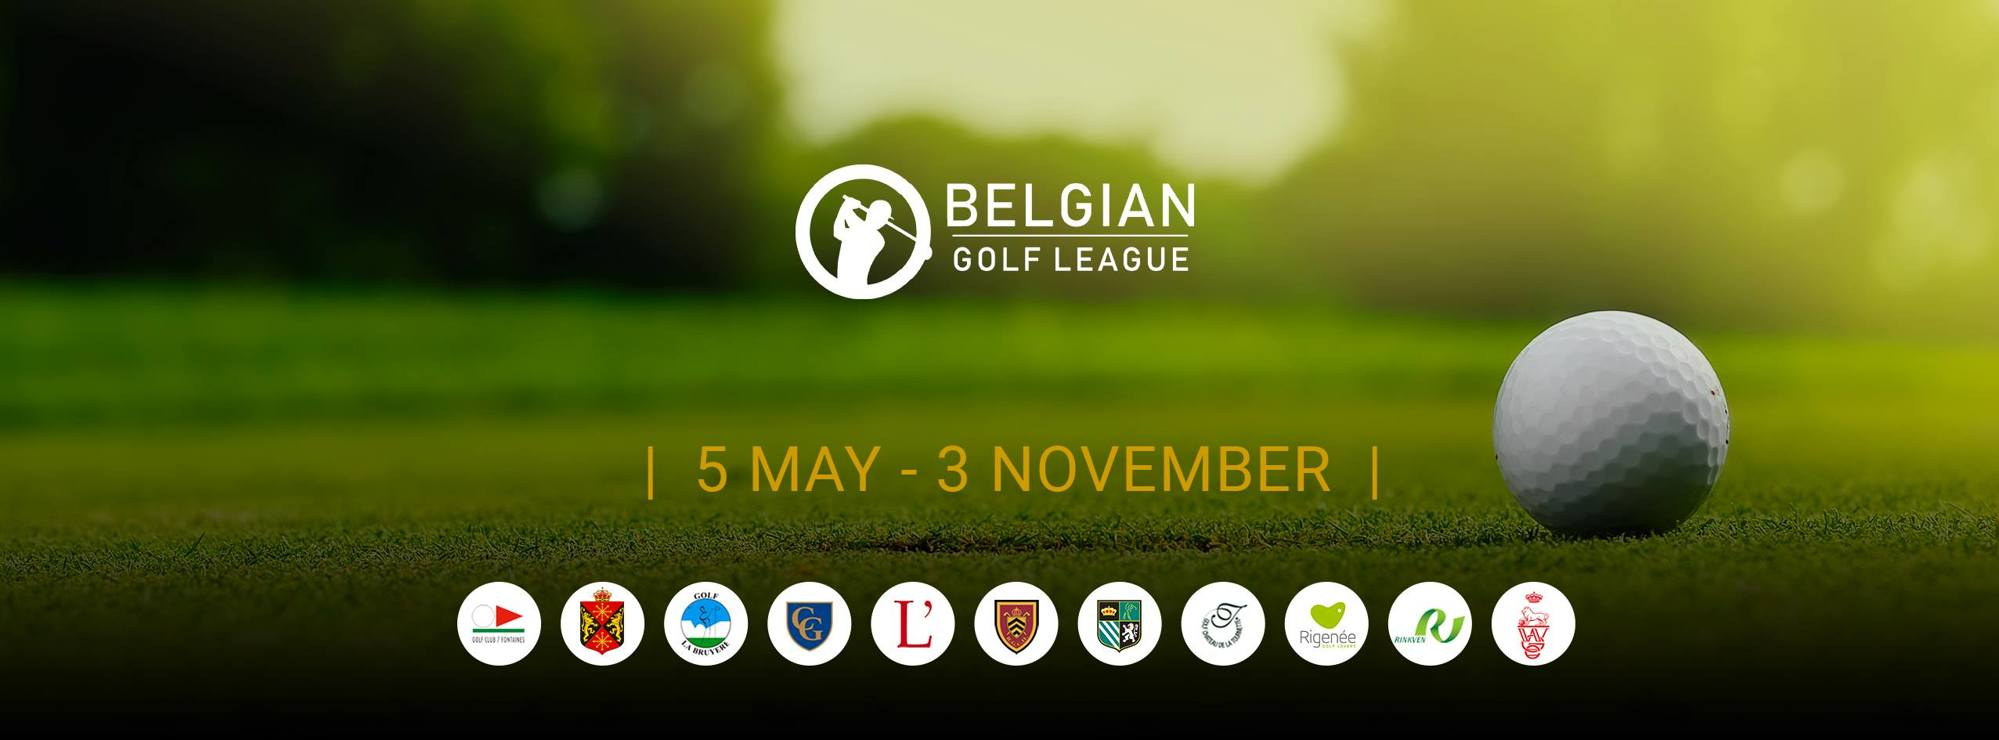 Belgian Golf League is reeds aan derde wedstrijd toe - Blog